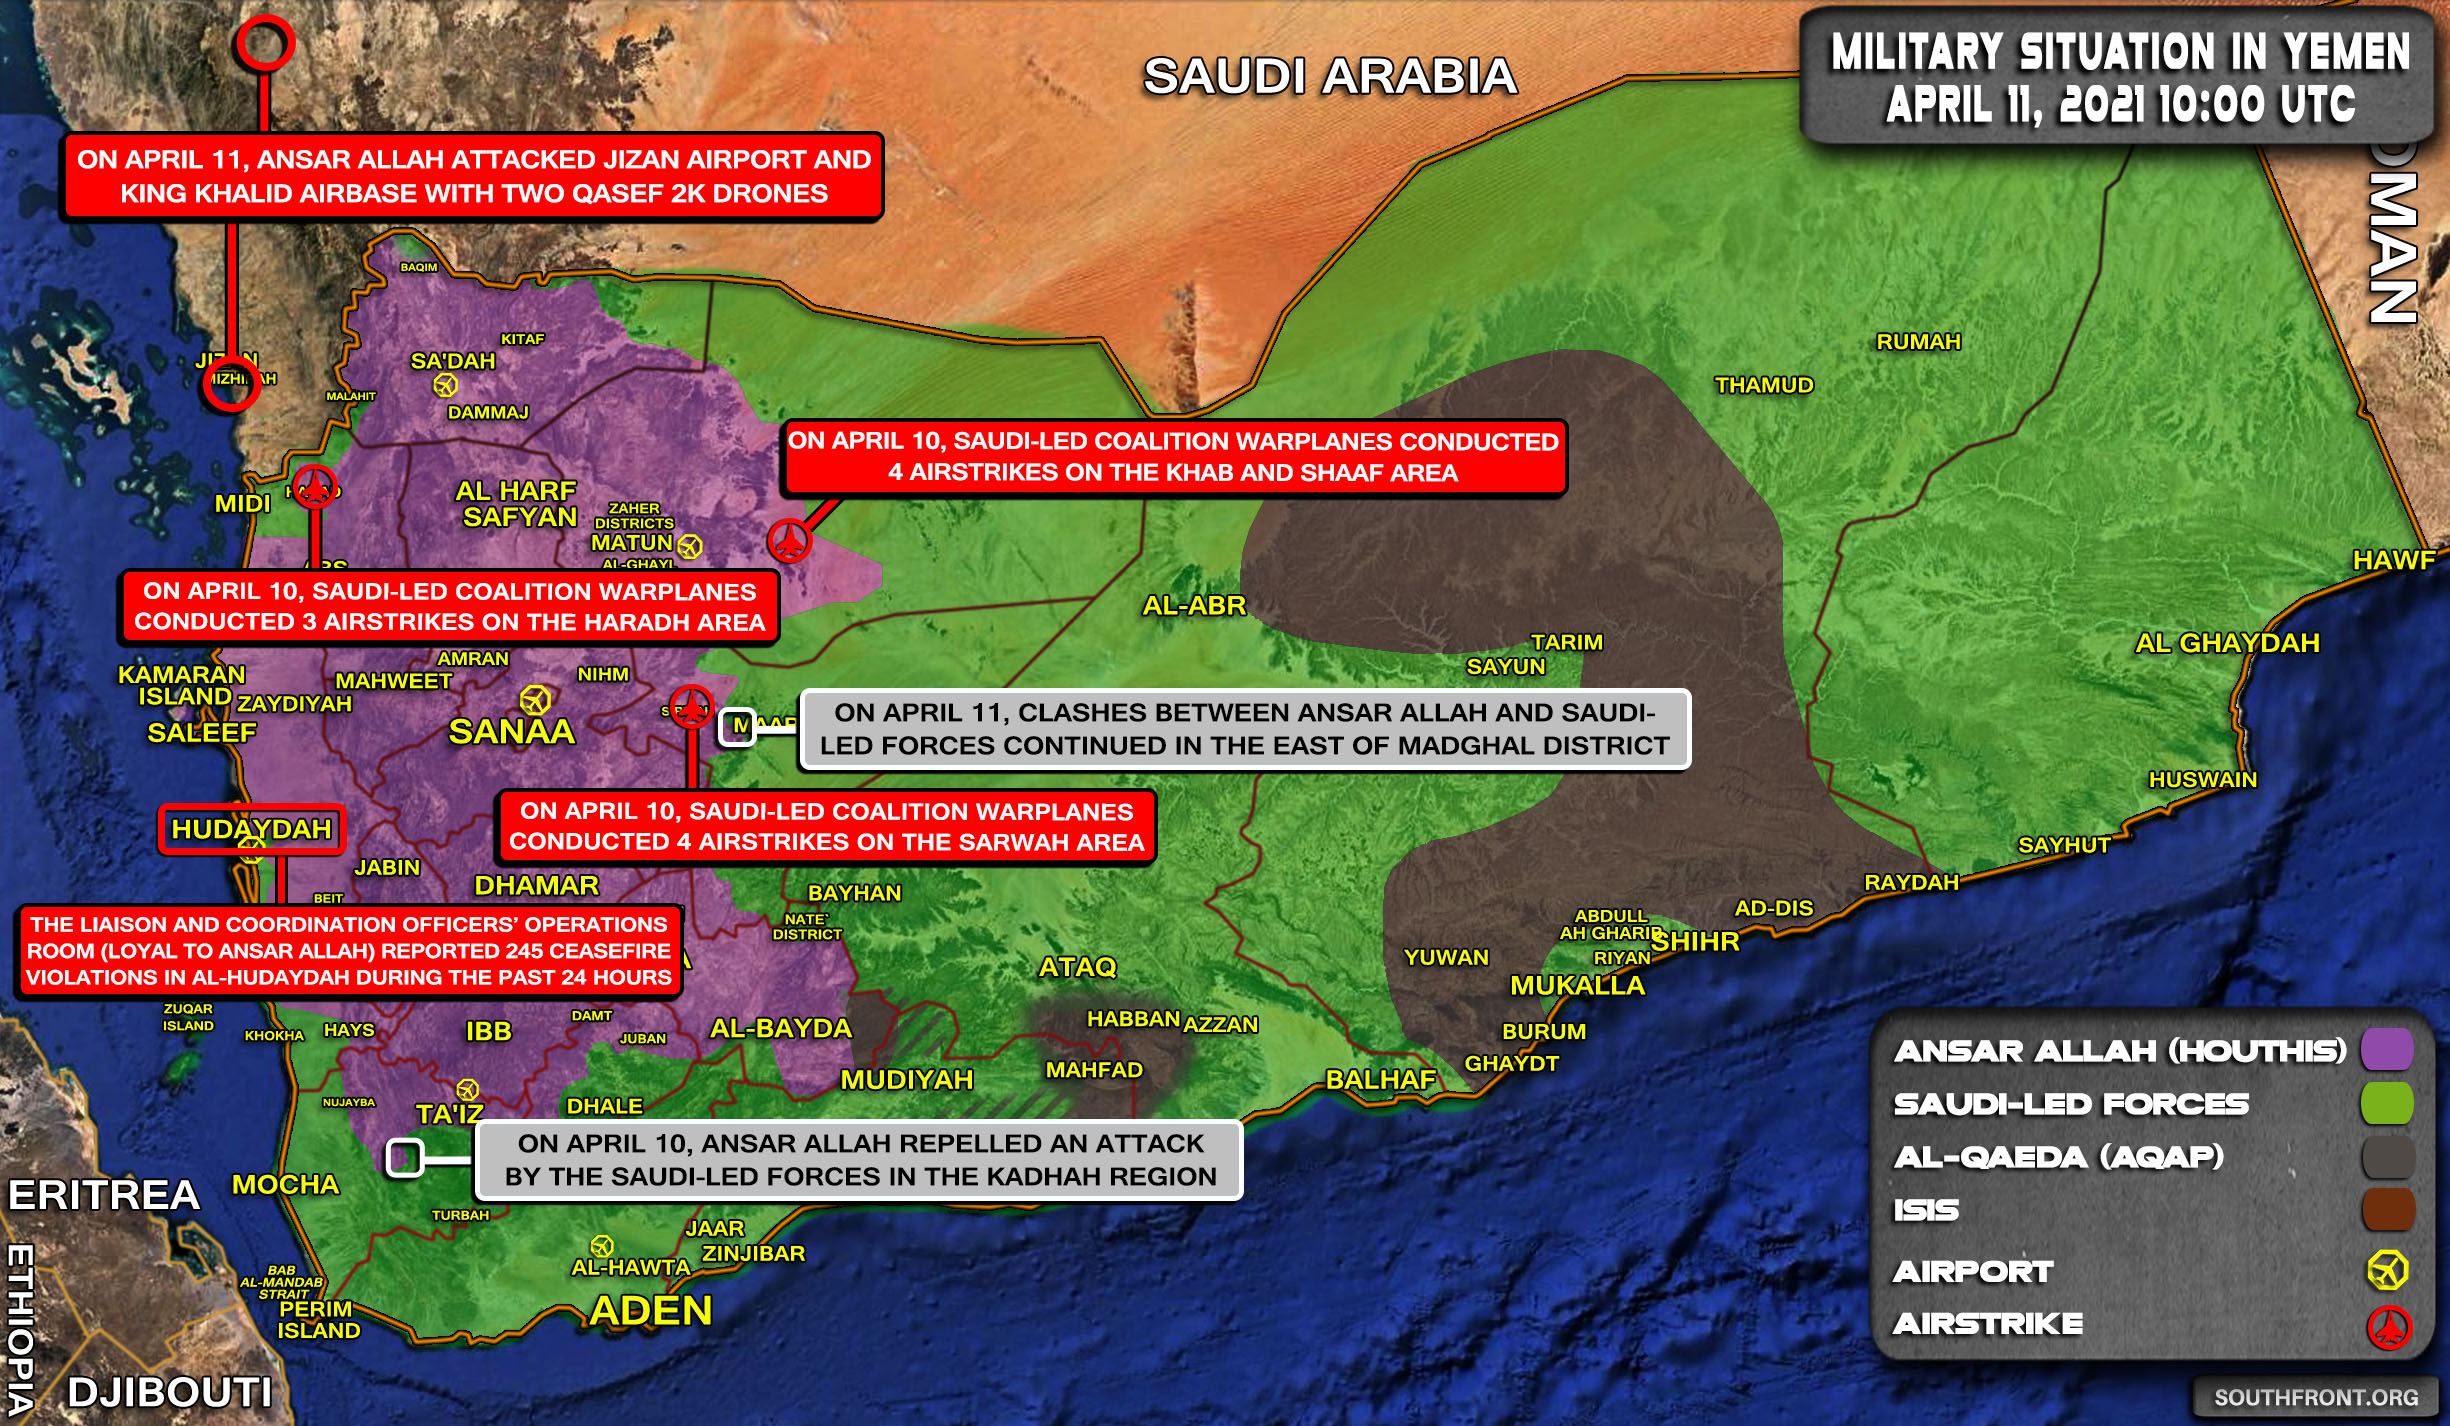 Houthi Drones Attacked Aramco Refineries, 'Sensitive Military Sites' In Saudi Arabia